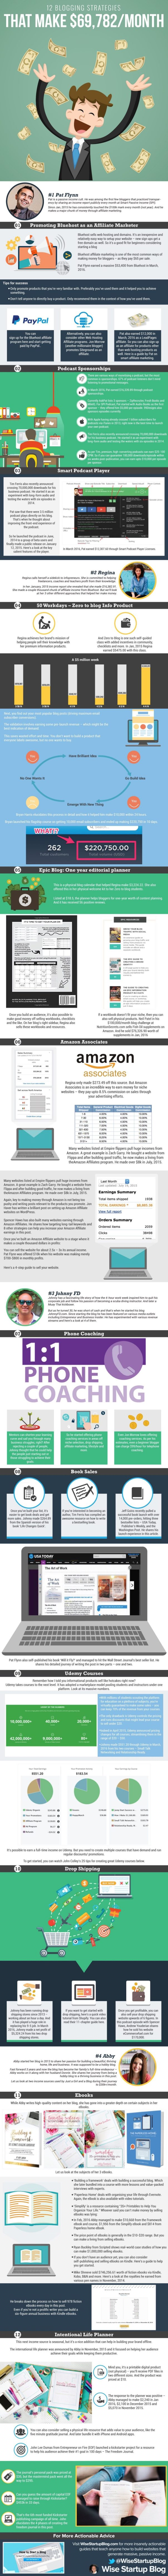 How to Start a Blog That Makes $124,407 [Infographic]